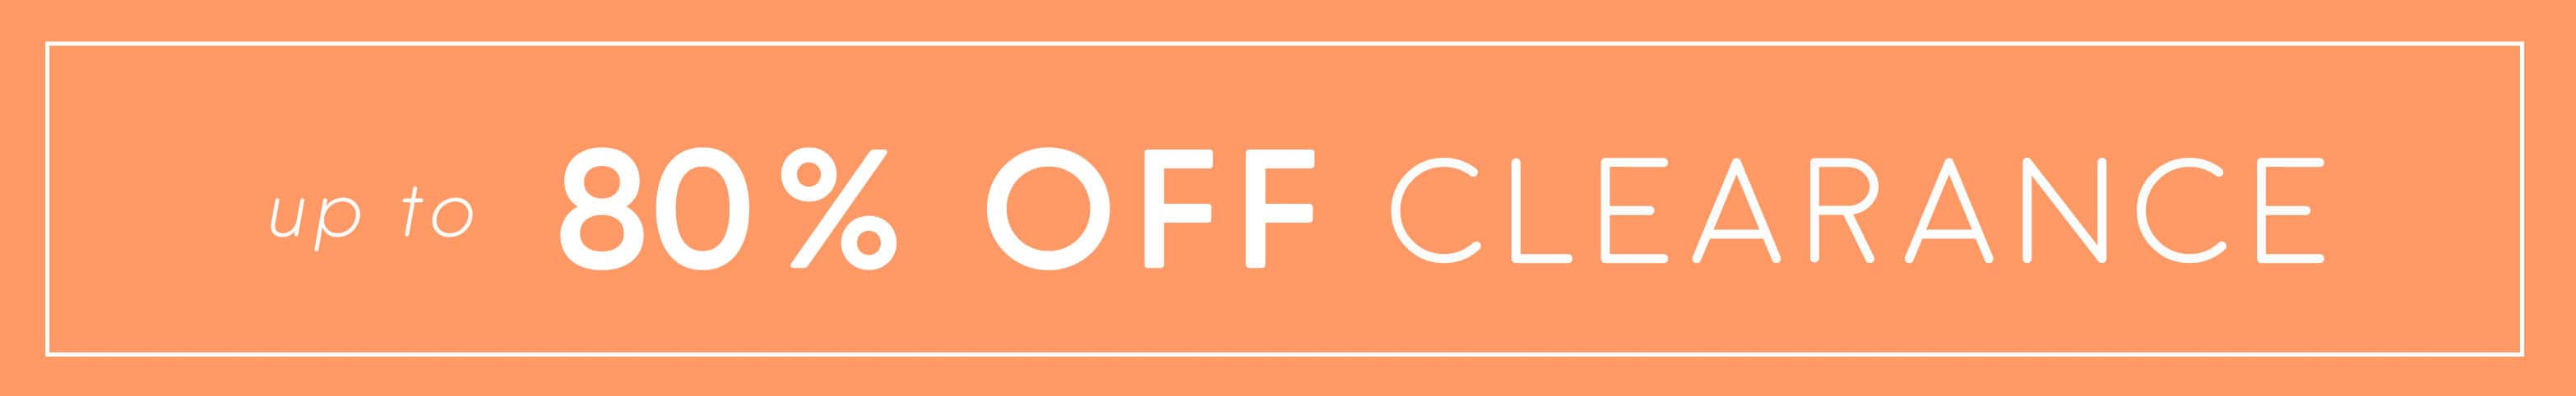 Wet Seal is Offering Another 50-70% Off Clearance Items starting at $0.20 + Free Ship Today Only